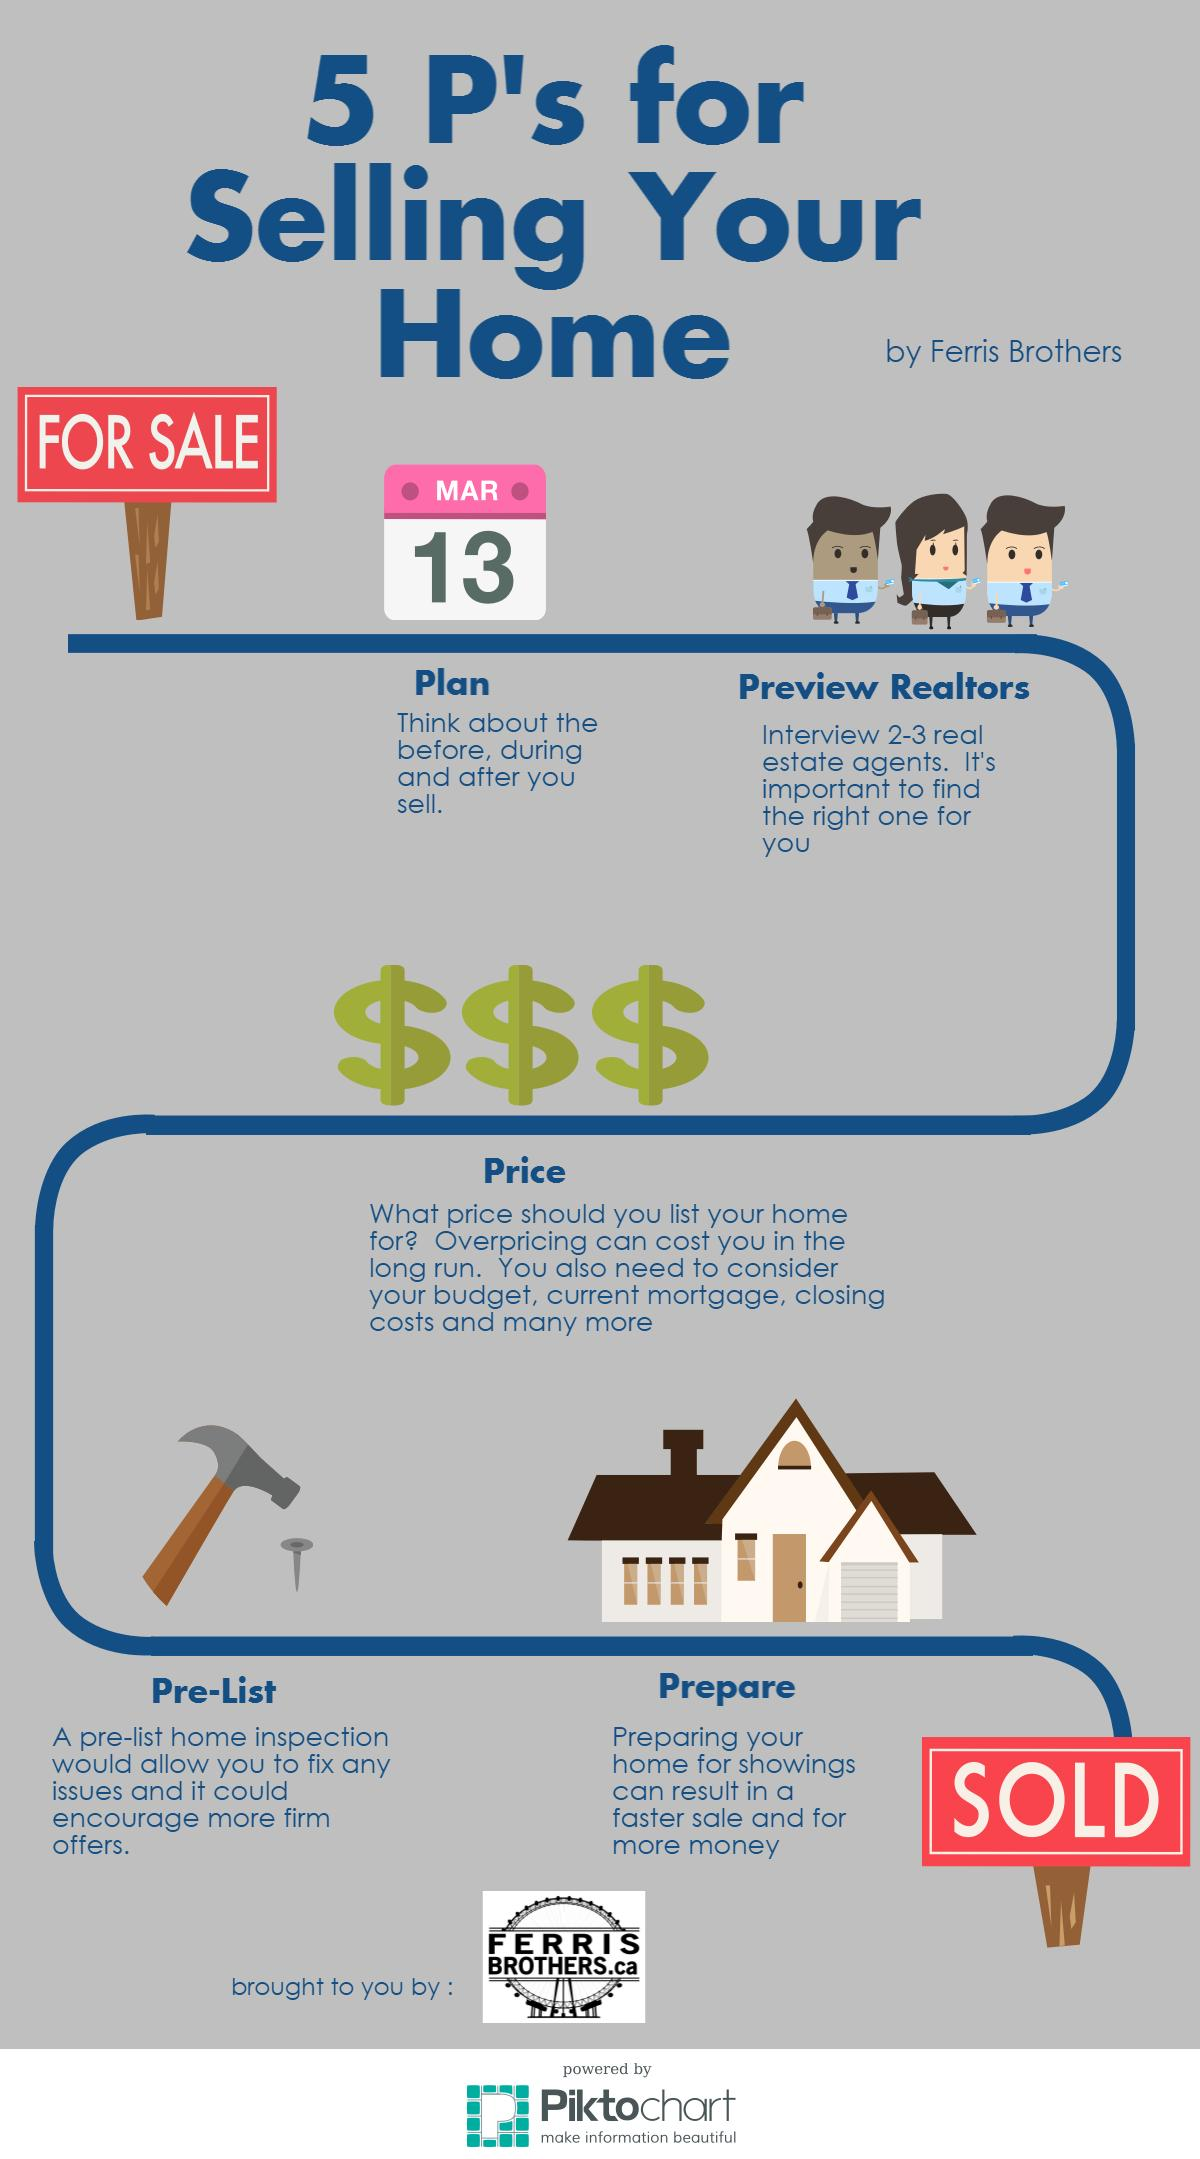 5 P's for selling your houe in a spring real estate market.